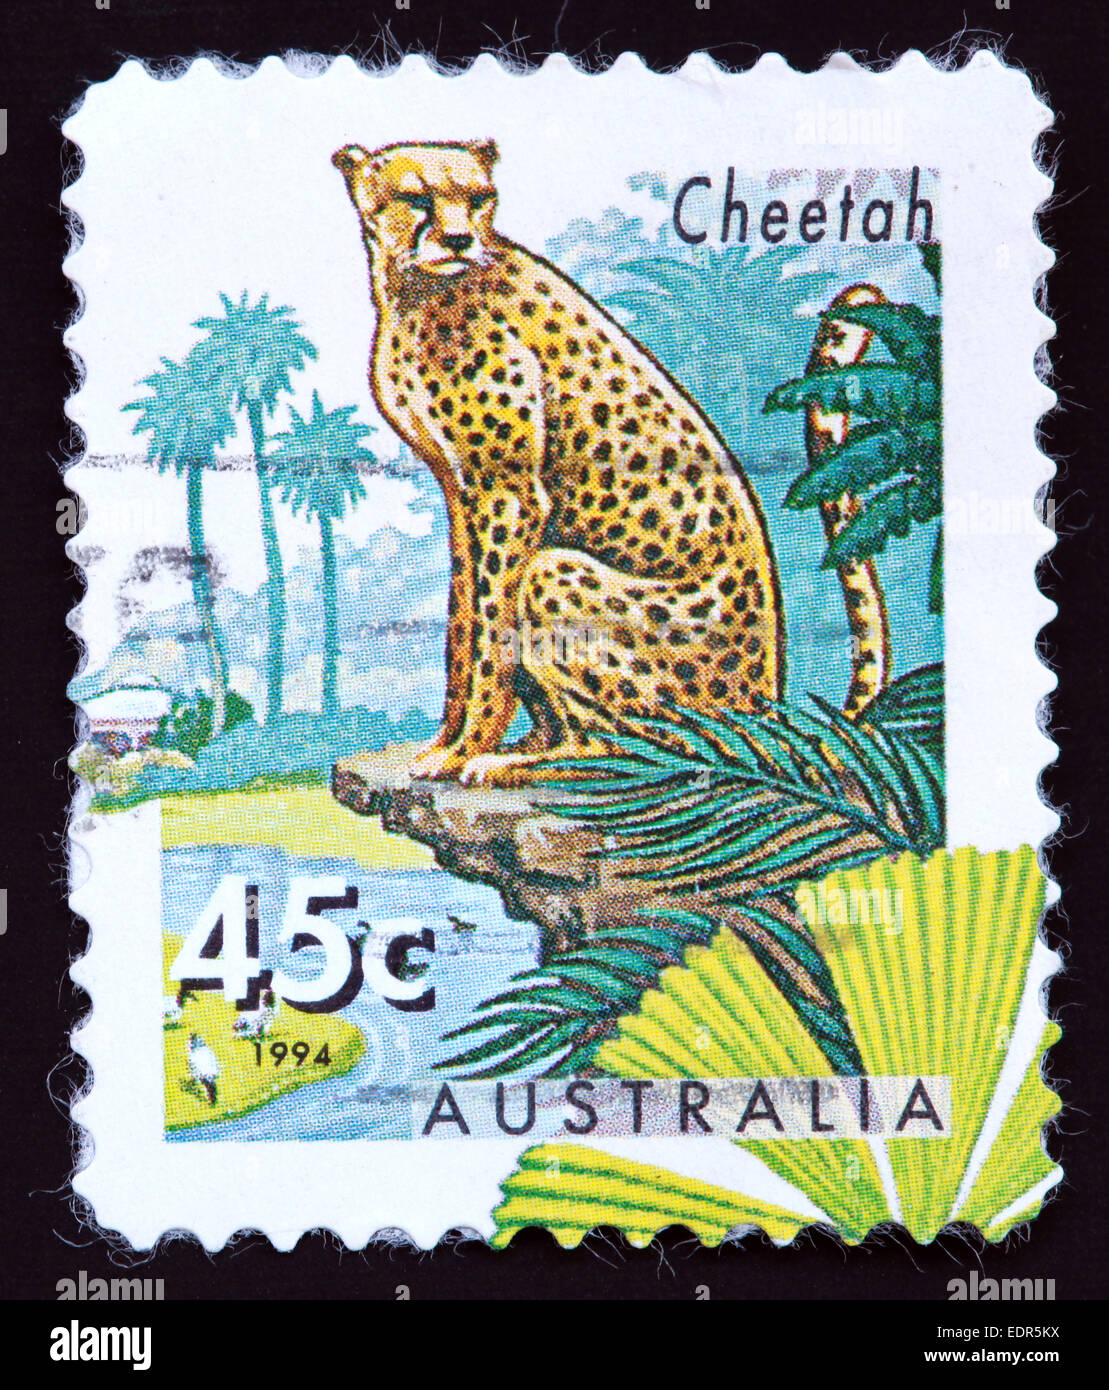 Used and postmarked Australia / Austrailian Stamp 45c 1994 Cheetah Stock Photo